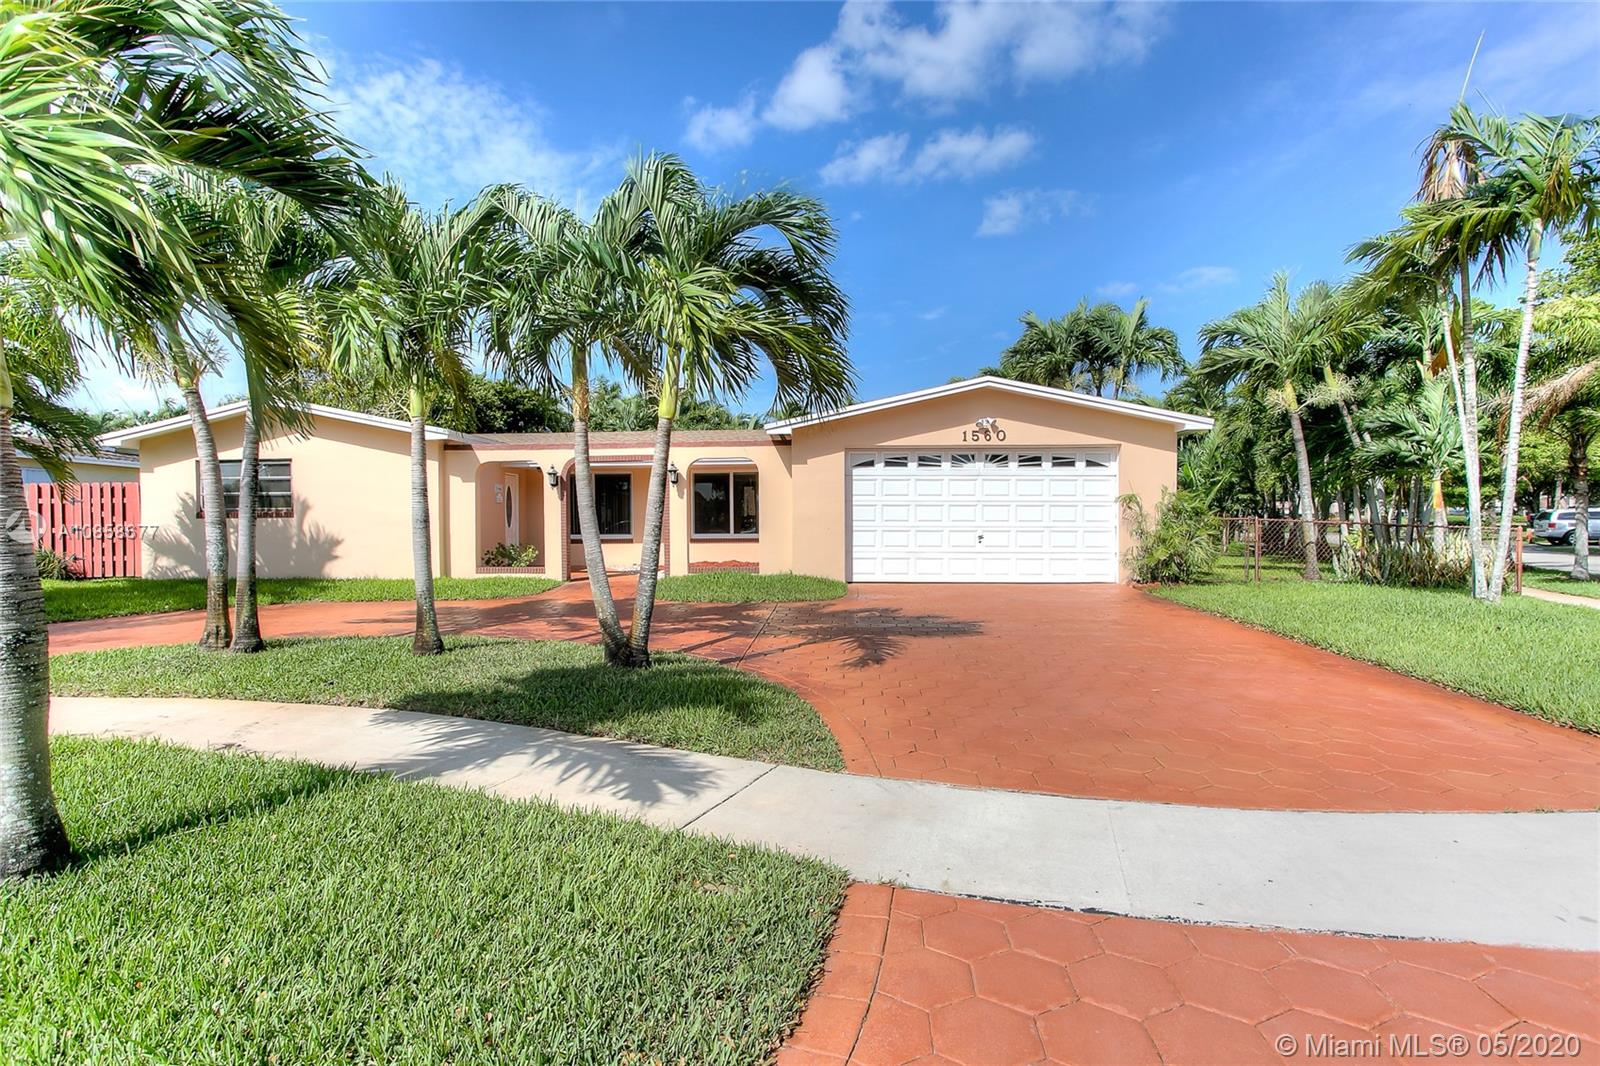 THIS SPACIOUS 3 BEDROOMS, 2 BATHROOMS SINGLE FAMILY HOME IS LOCATED IN THE DESIRABLE PEMBROKE LAKES COMMUNITY AND ONLY MINUTES AWAY FROM SHOPPING CENTERS, MALLS AND HIGHWAYS. THIS WELL KEPT HOME SITS ON A HUGE CORNER LOT, HAS A NEW ROOF, STAMPED CONCRETE CIRCULAR DRIVEWAY AND 2 CAR GARAGE. THE INTERIOR FEATURES INCLUDE A  LARGE LIVING ROOM, FORMAL DINING ROOM, LARGE MASTER BEDROOM AND BATHROOM WITH ACCESS TO THE BACKYARD/POOL AREA, SPACIOUS KITCHEN, NEWER STAINLESS STEEL APPLIANCES AND FAMILY ROOM. THE LIVING AND FAMILY ROOM HAVE SLIDING GLASS DOORS THAT LEAD TO THE POOL AREA AND CONNECTS THE INDOOR AND OUTDOORS MAKING IT A HUGE PERFECT SPACE FOR ENTERTAINING .